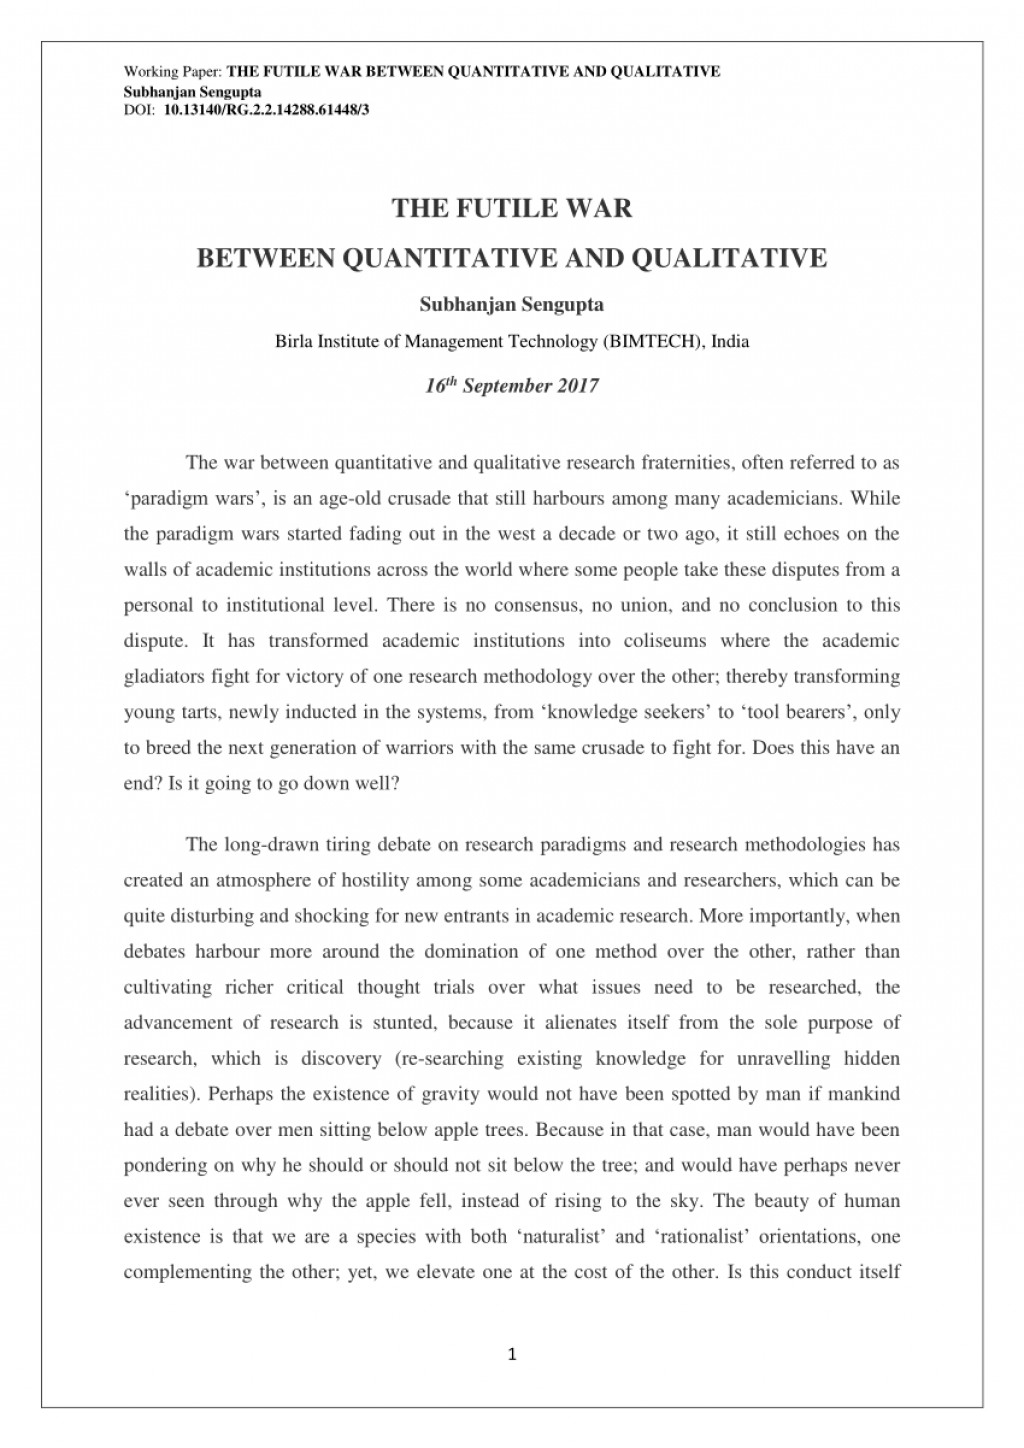 002 Example Of Hypothesis In Qualitative Research Paper Singular Large